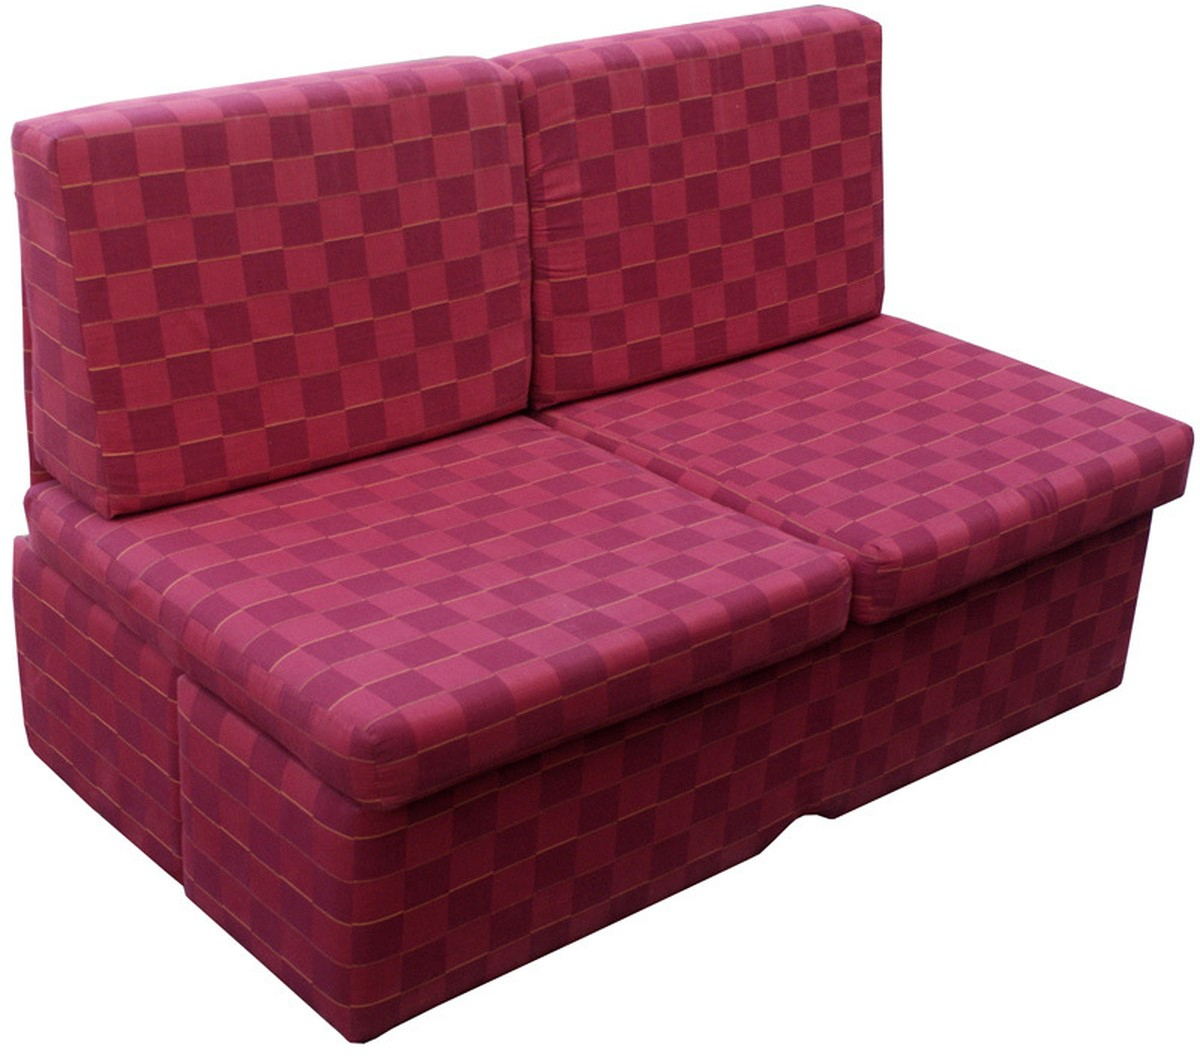 Secondhand prop shop mayfair furniture caterfair for Comfy sofas for sale